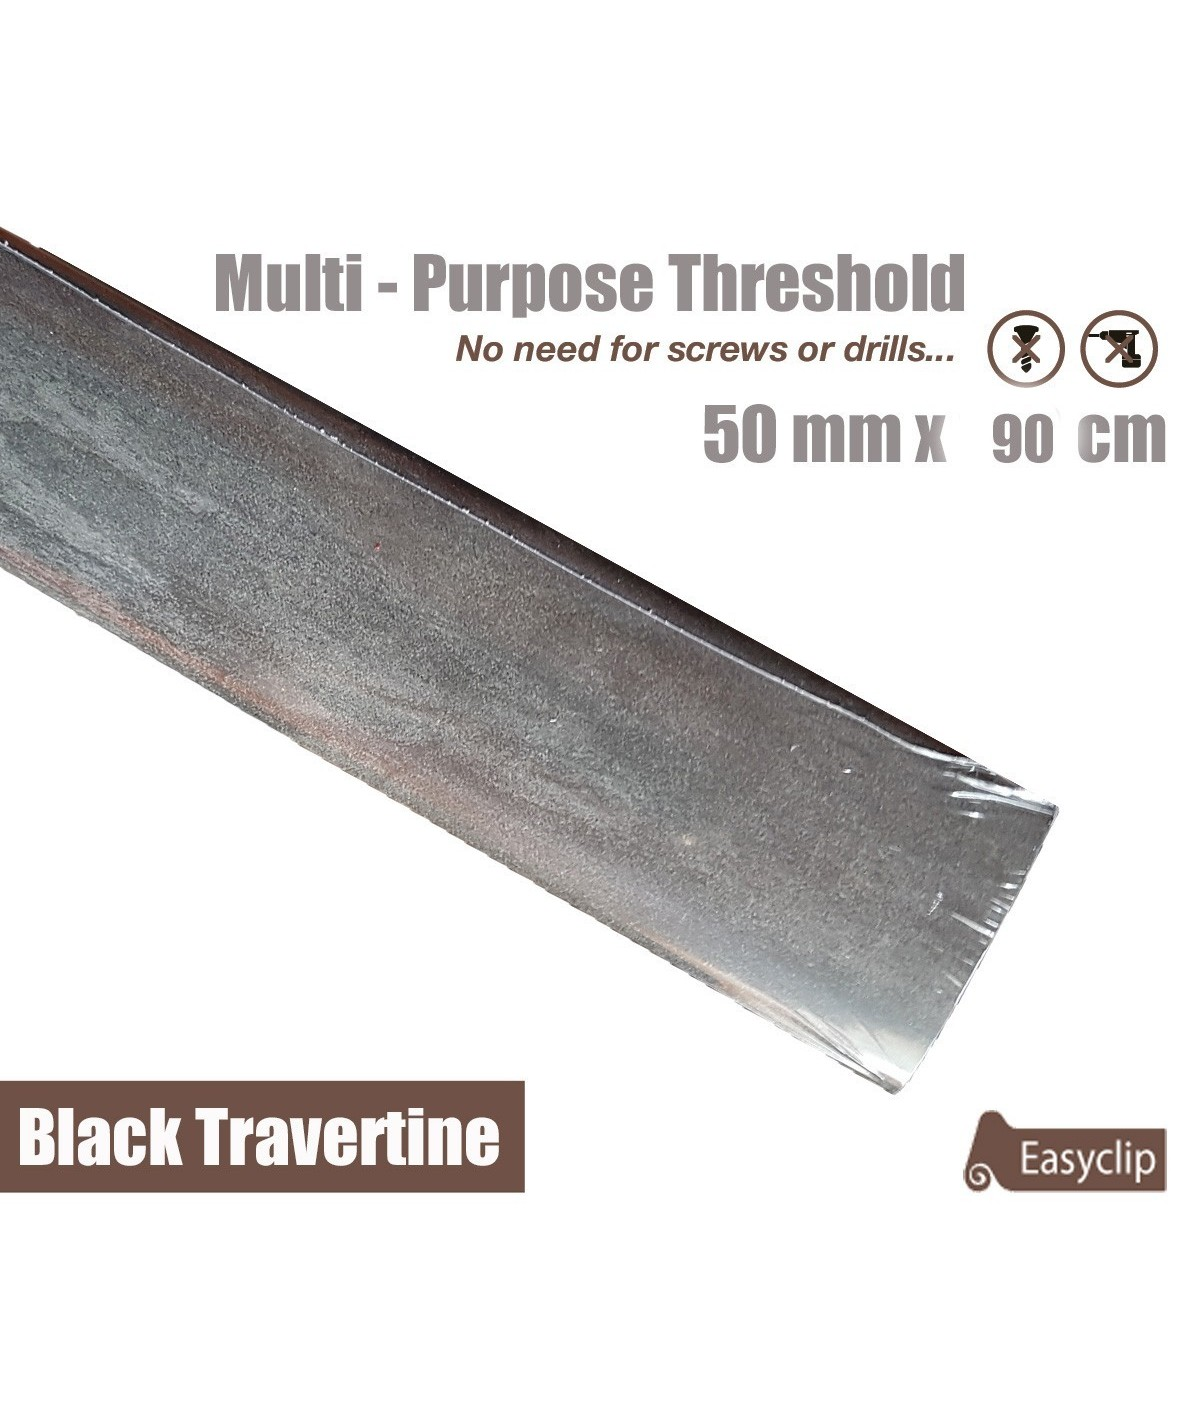 Black Travertine Laminated Transition Threshold Strip 50mm x 90cm Multi-Height/Pivots